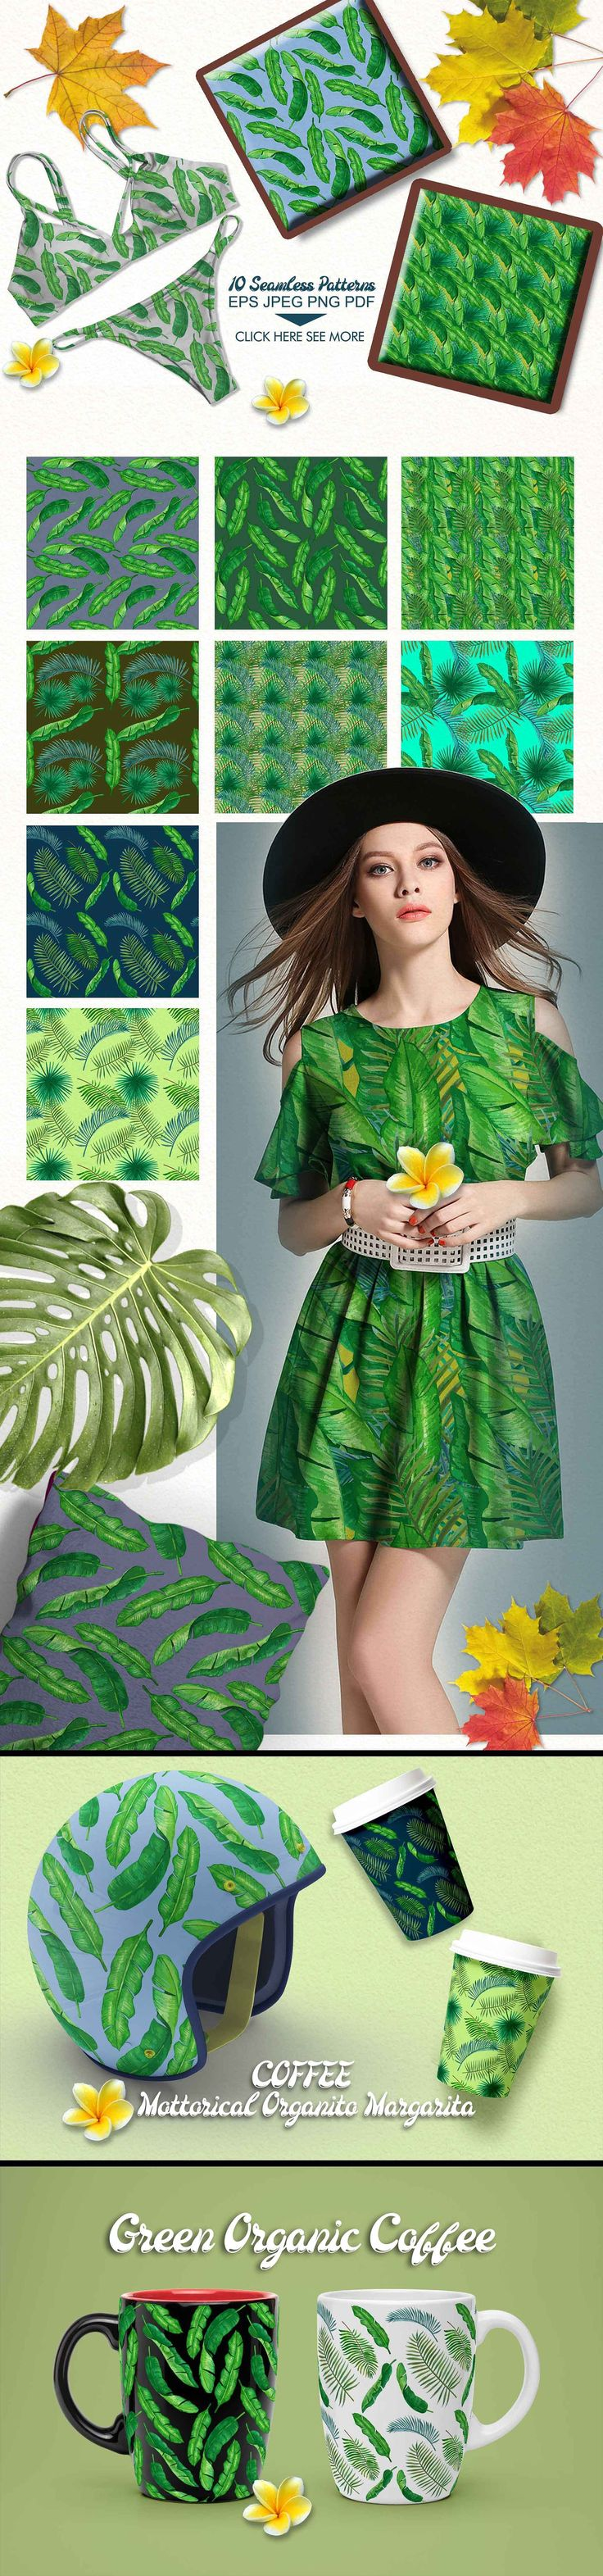 Palm and Banana Leaves Patterns by iGRAPHOBIA on @creativemarket